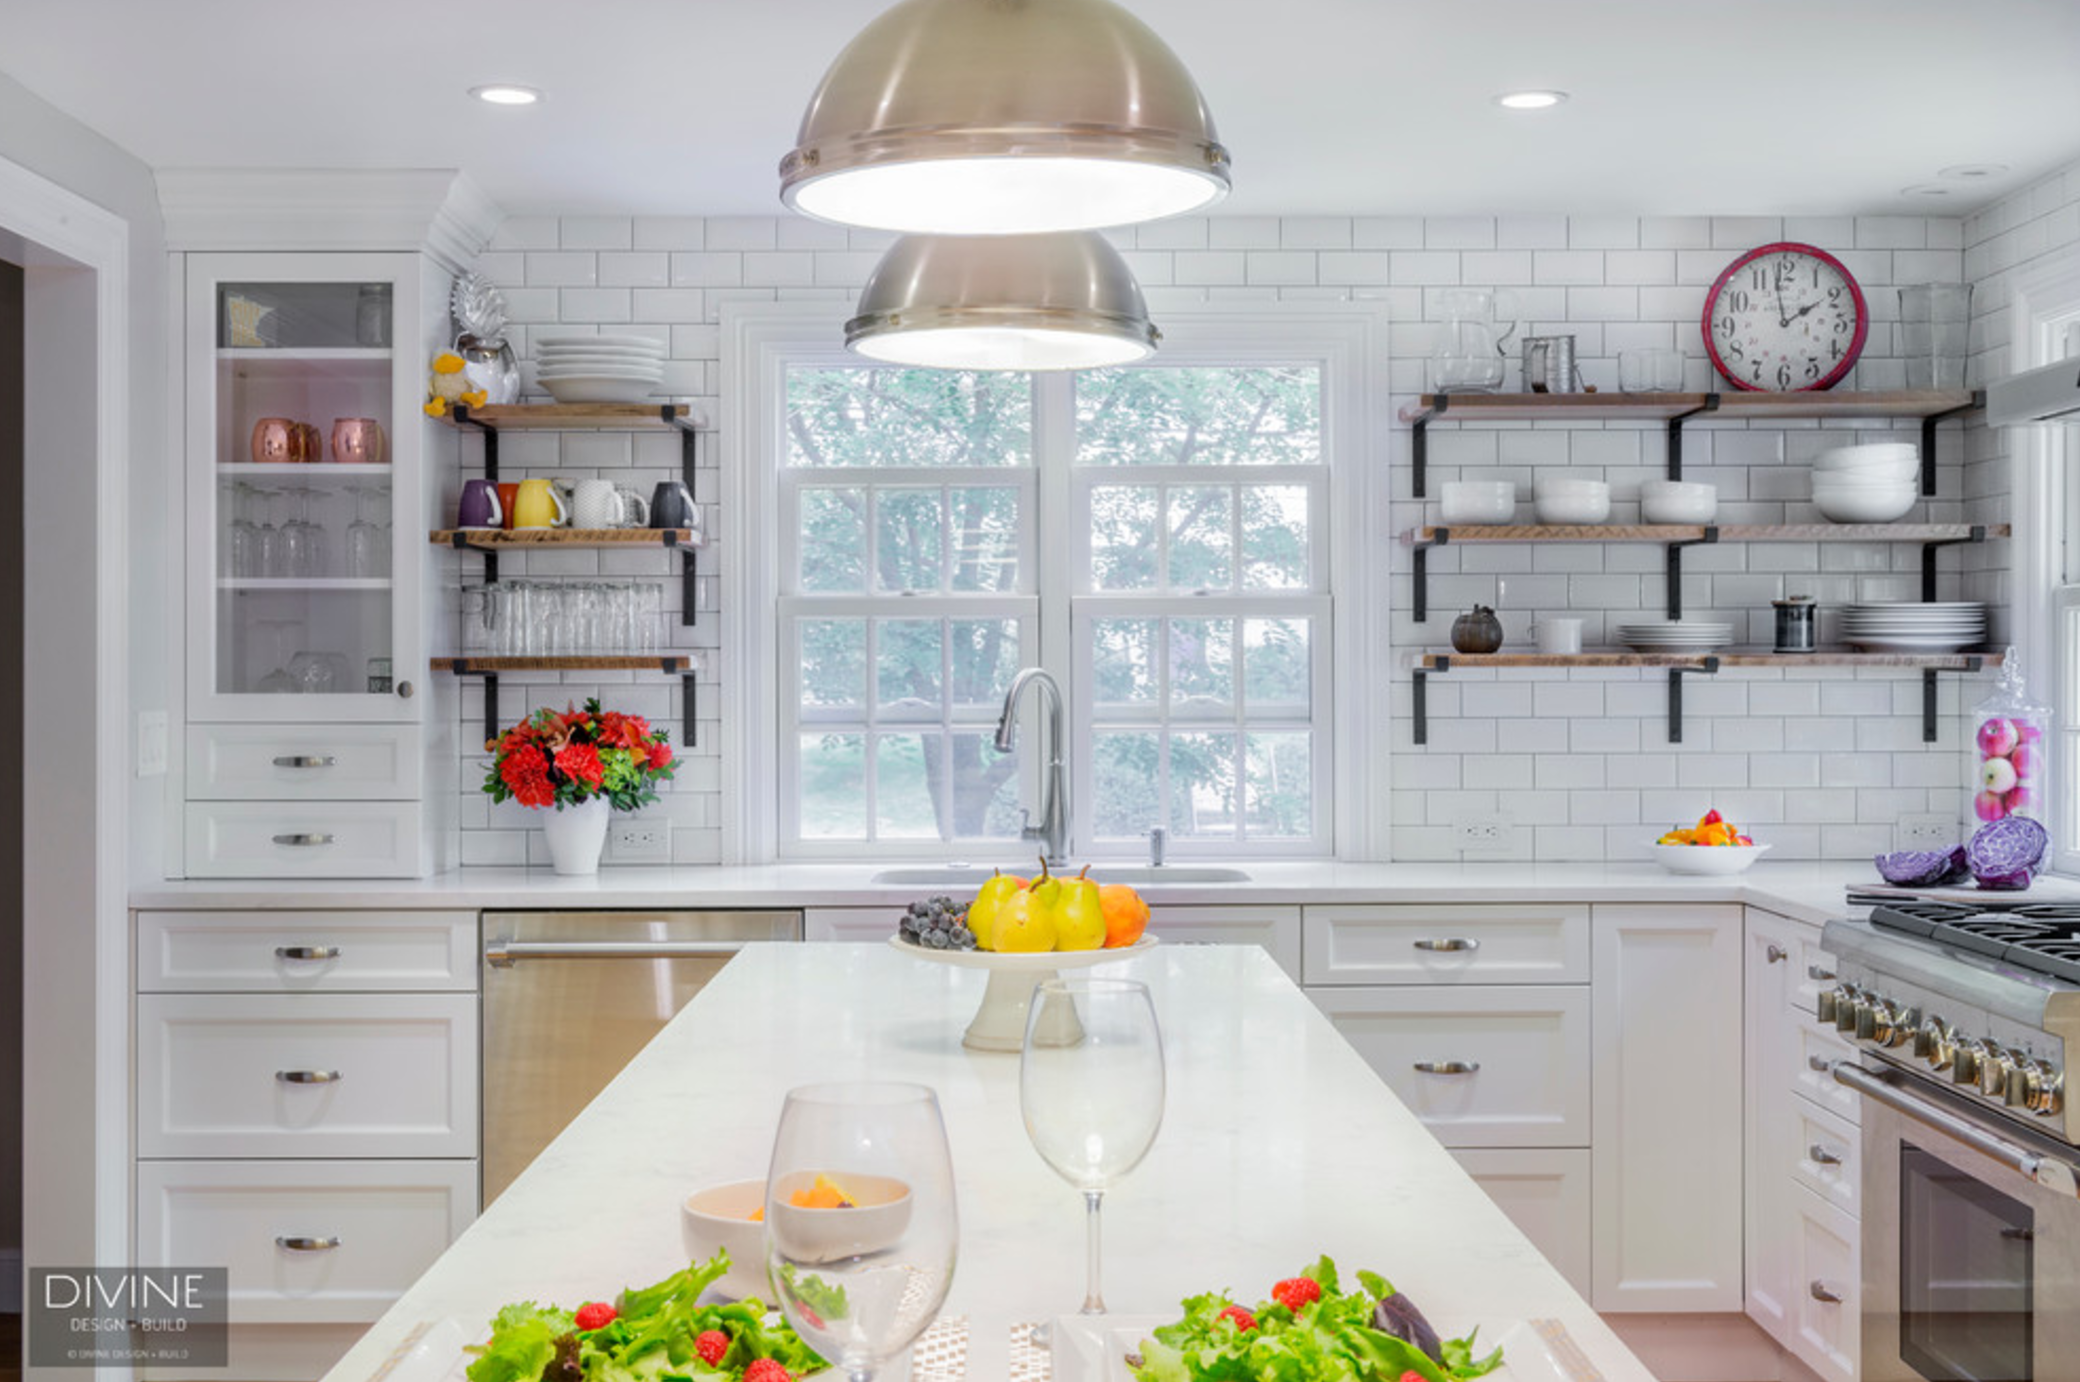 8 Pictures of Kitchens With Subway Tile Backsplashes — Divine Design ...